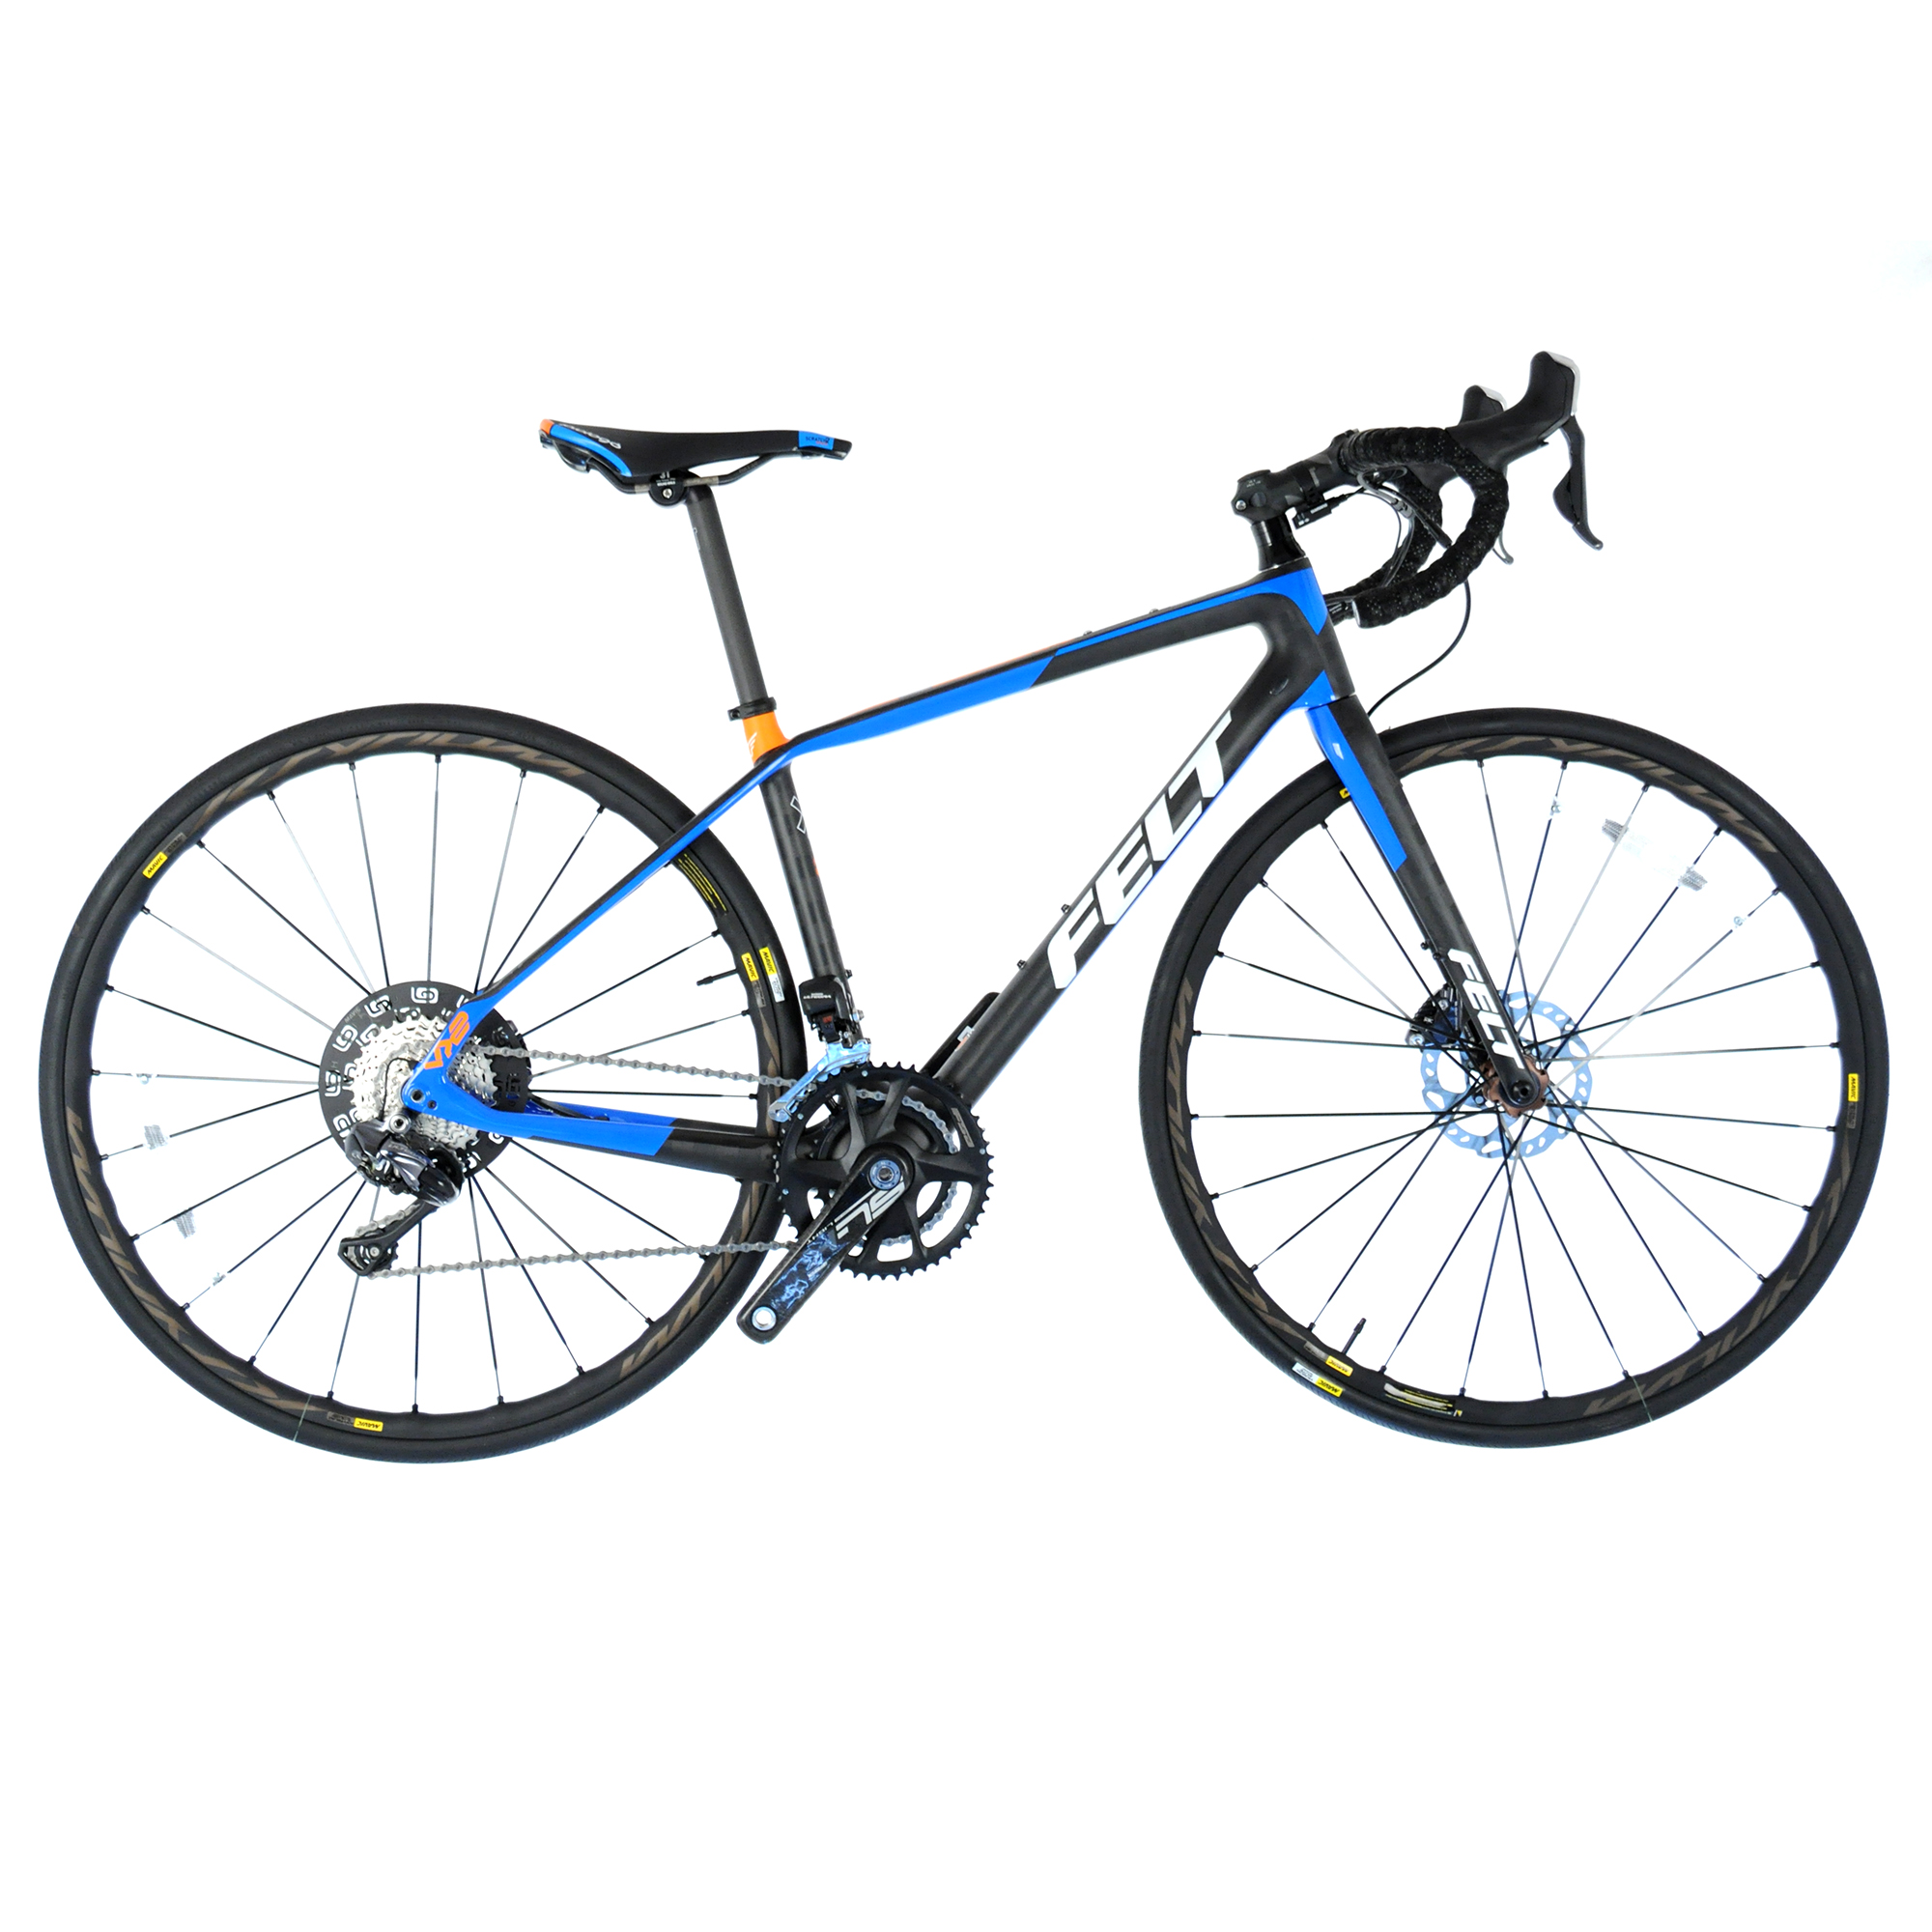 Felt VR2 Carbon Hydraulic Disc Road Bike Shimano Ultegra Di2 2x11-Speed // 47cm